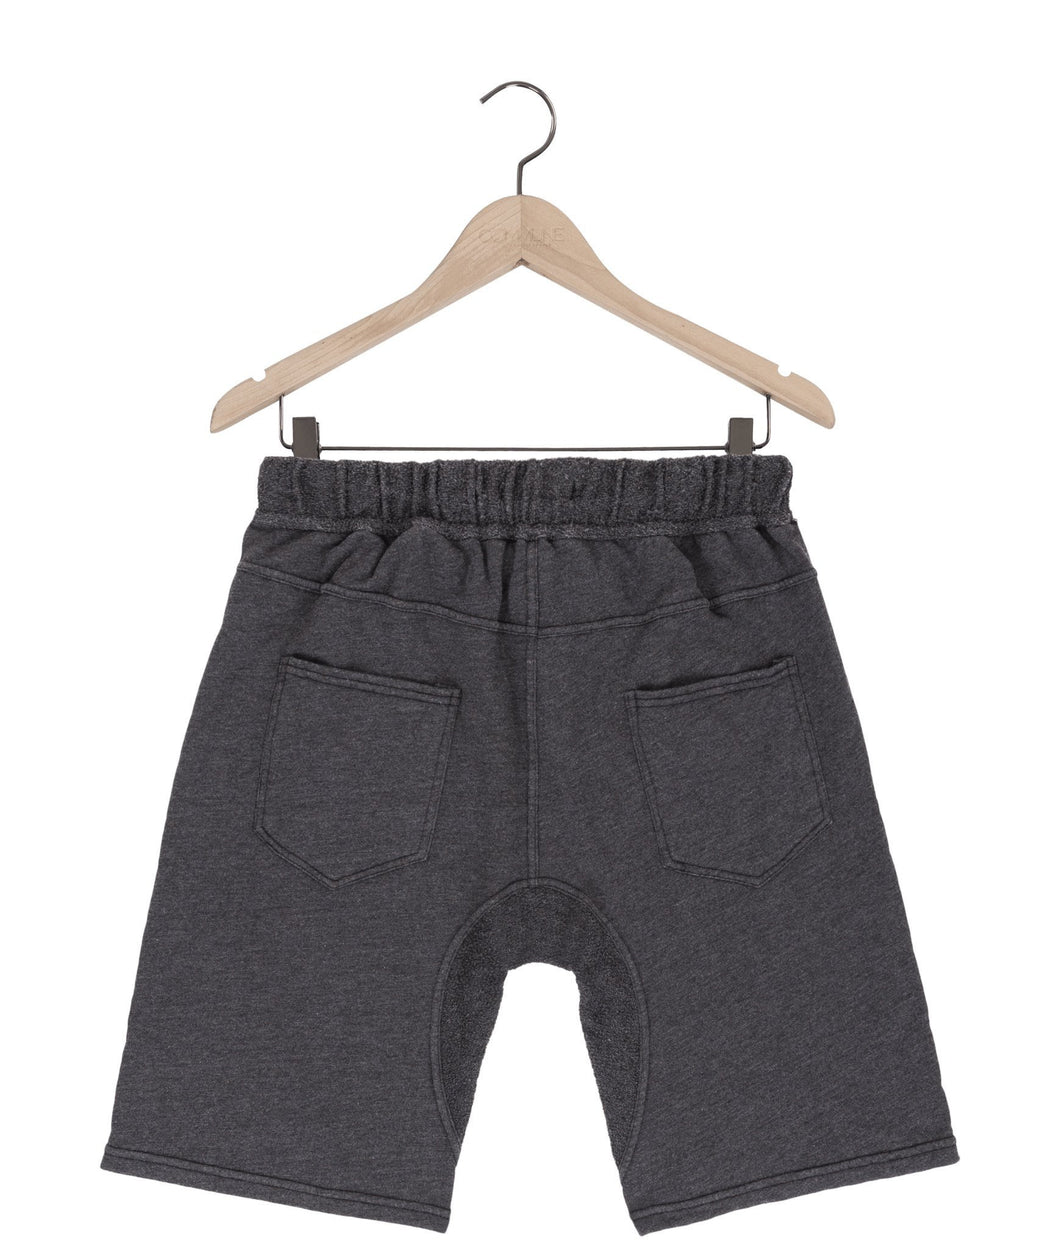 Jasper kangaroo sweat shorts in graphite mix - DE LA COMMUNE x Reese De Luca